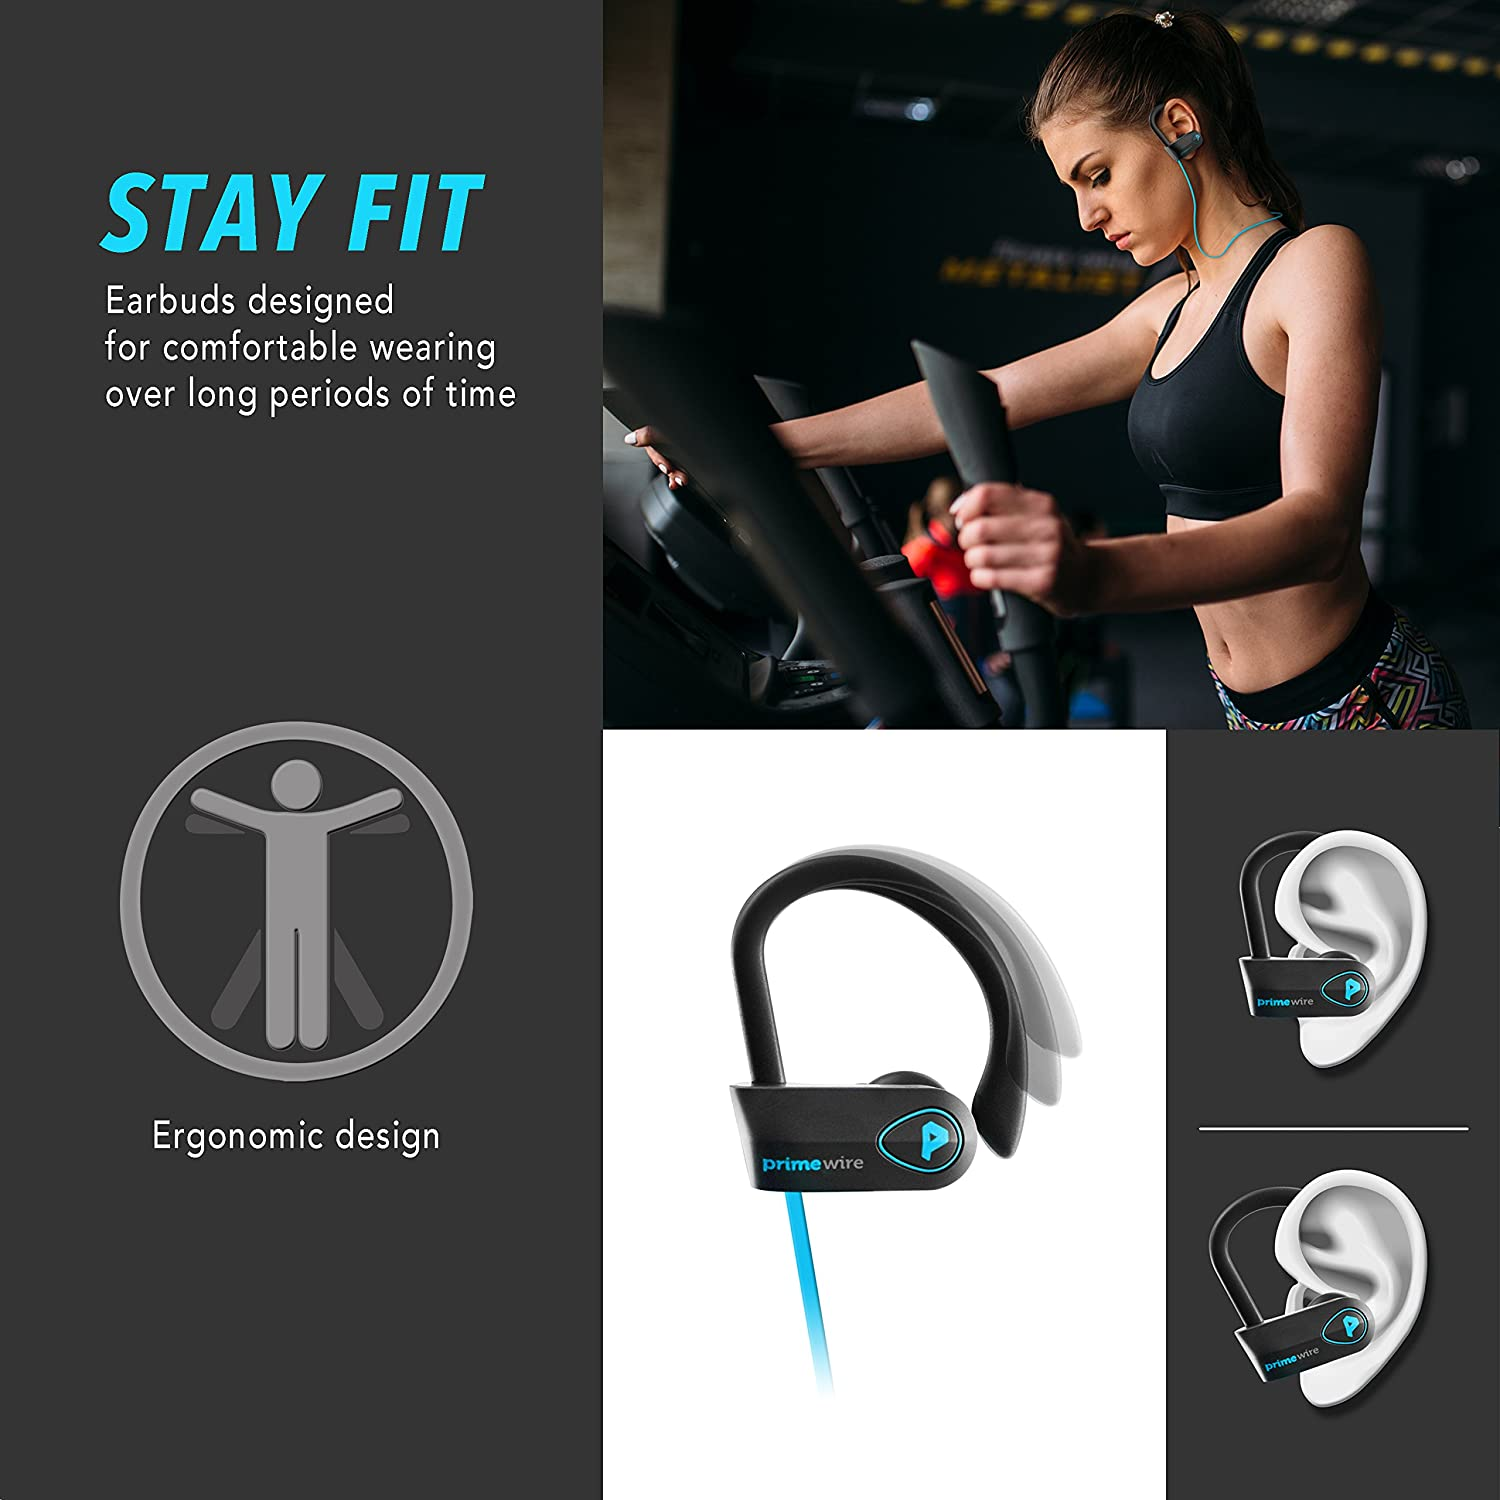 Amazon.com: PrimeWire Powerbuds Bluetooth Earbuds, The Best Wireless ...